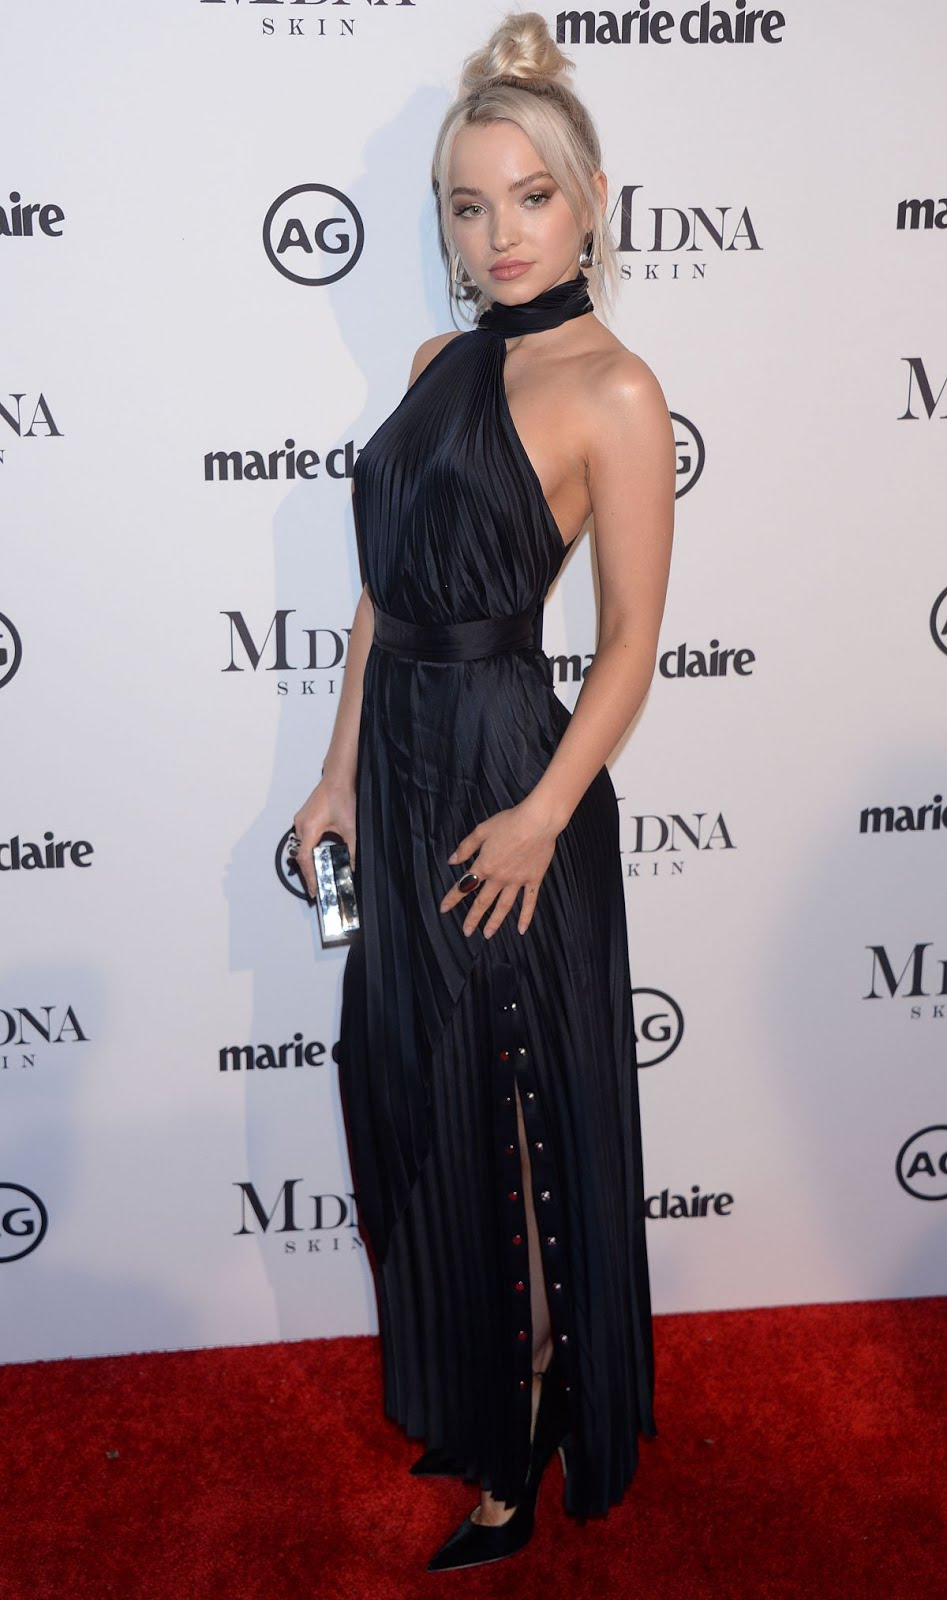 Dove Cameron At Marie Claire Image Makers Awards In Los Angeles